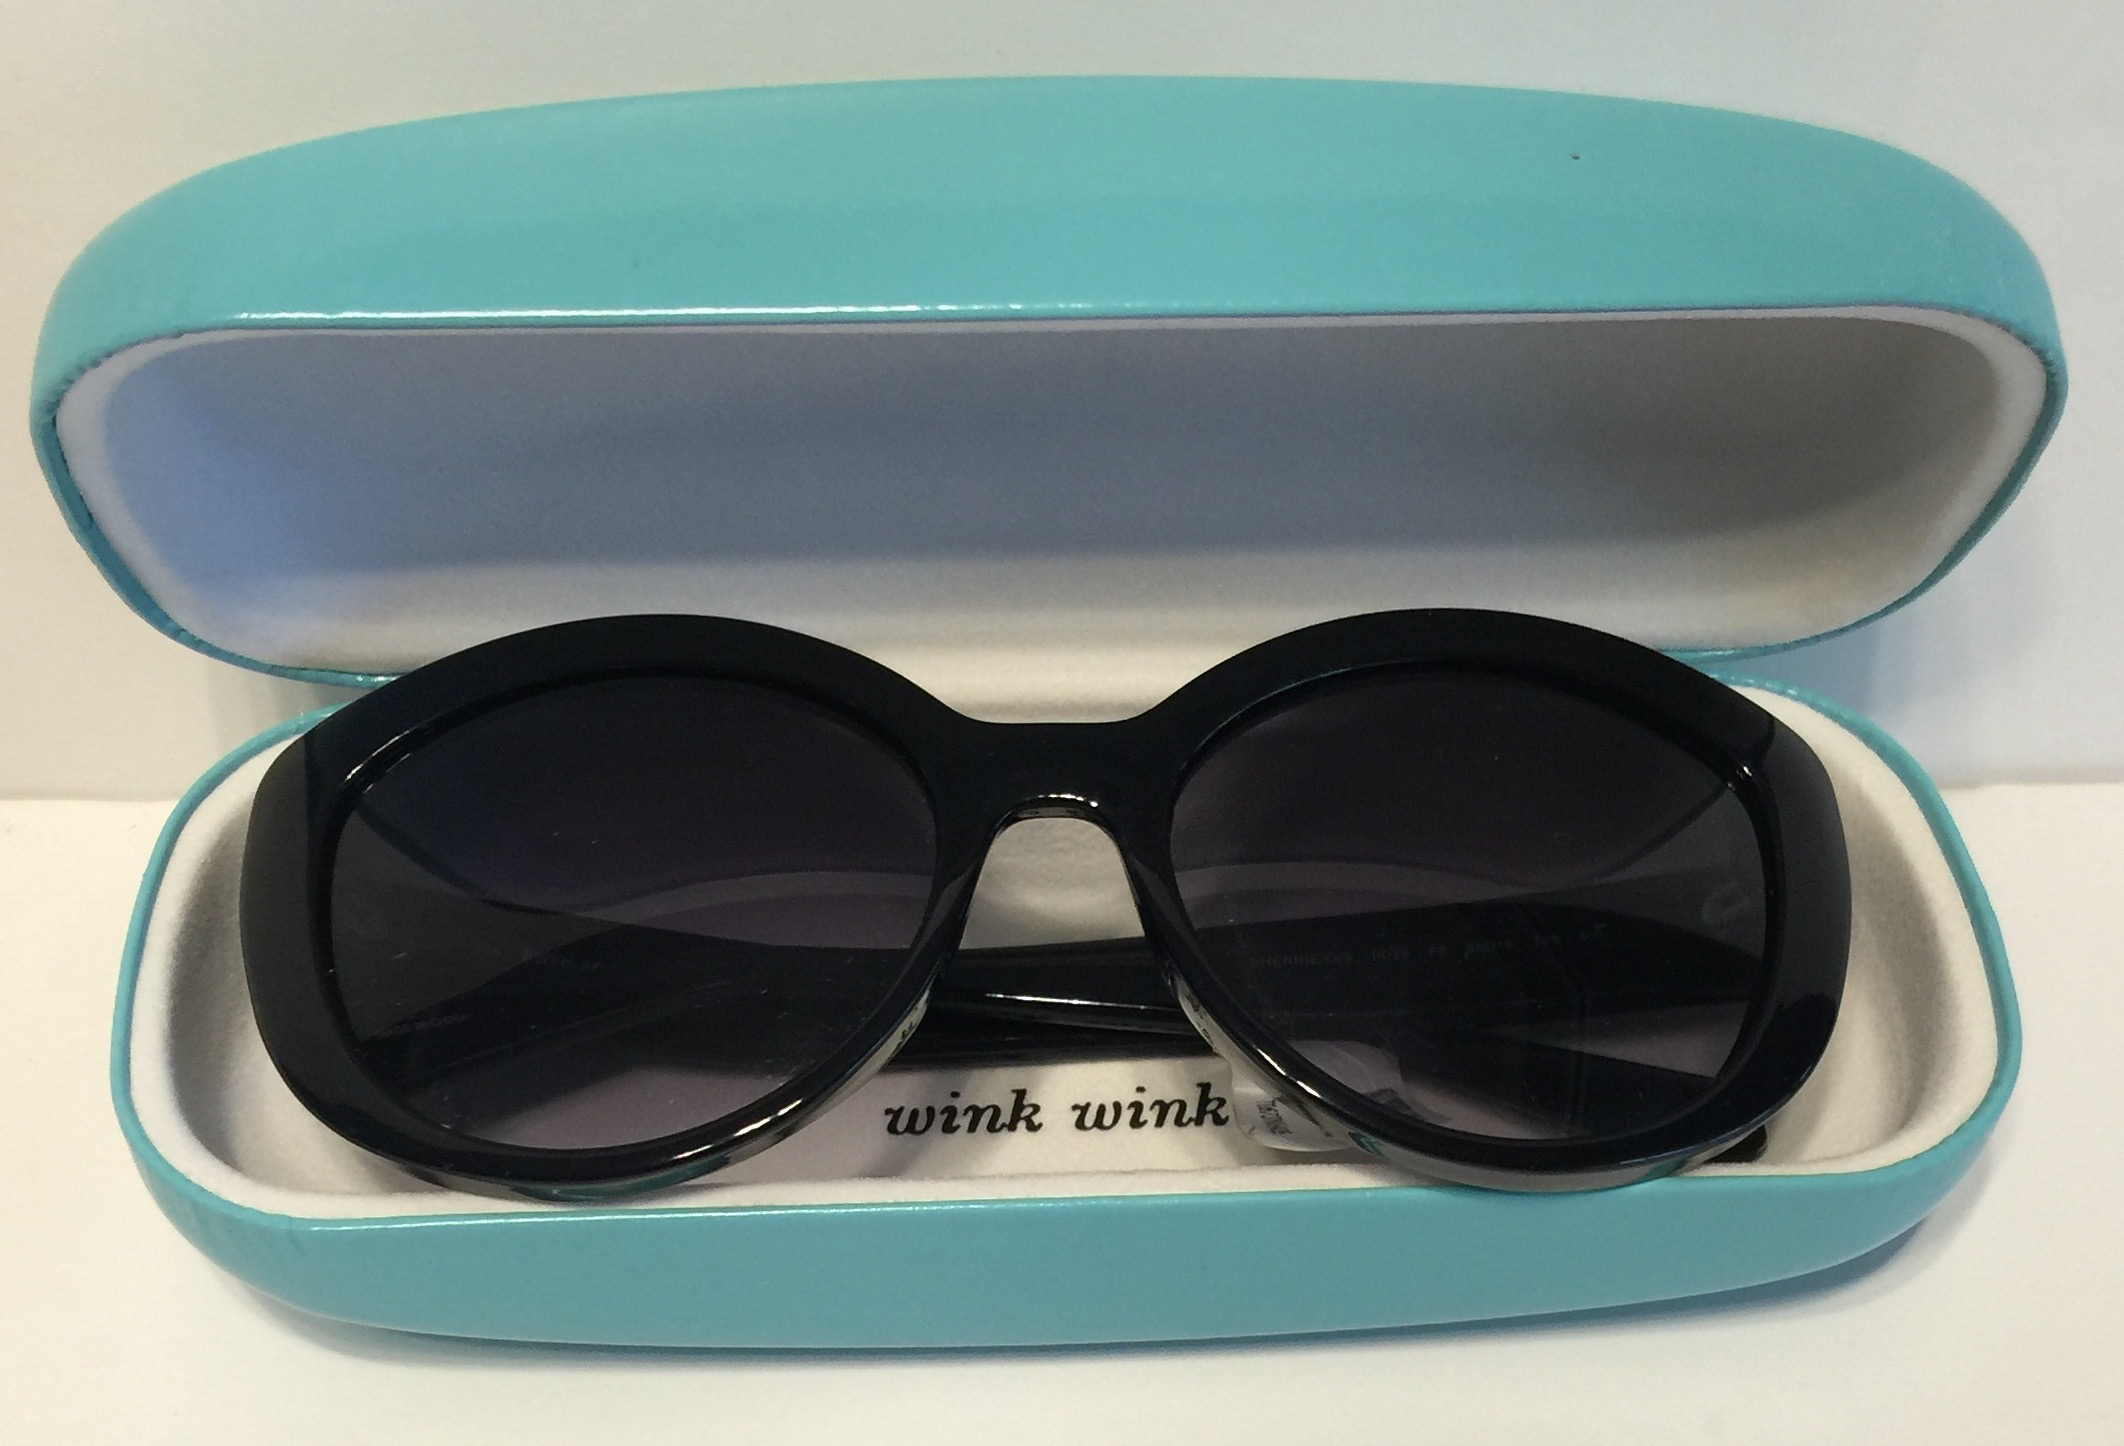 Kate Spade New York Safilo Sherrie Sunglasses 0d28 Black